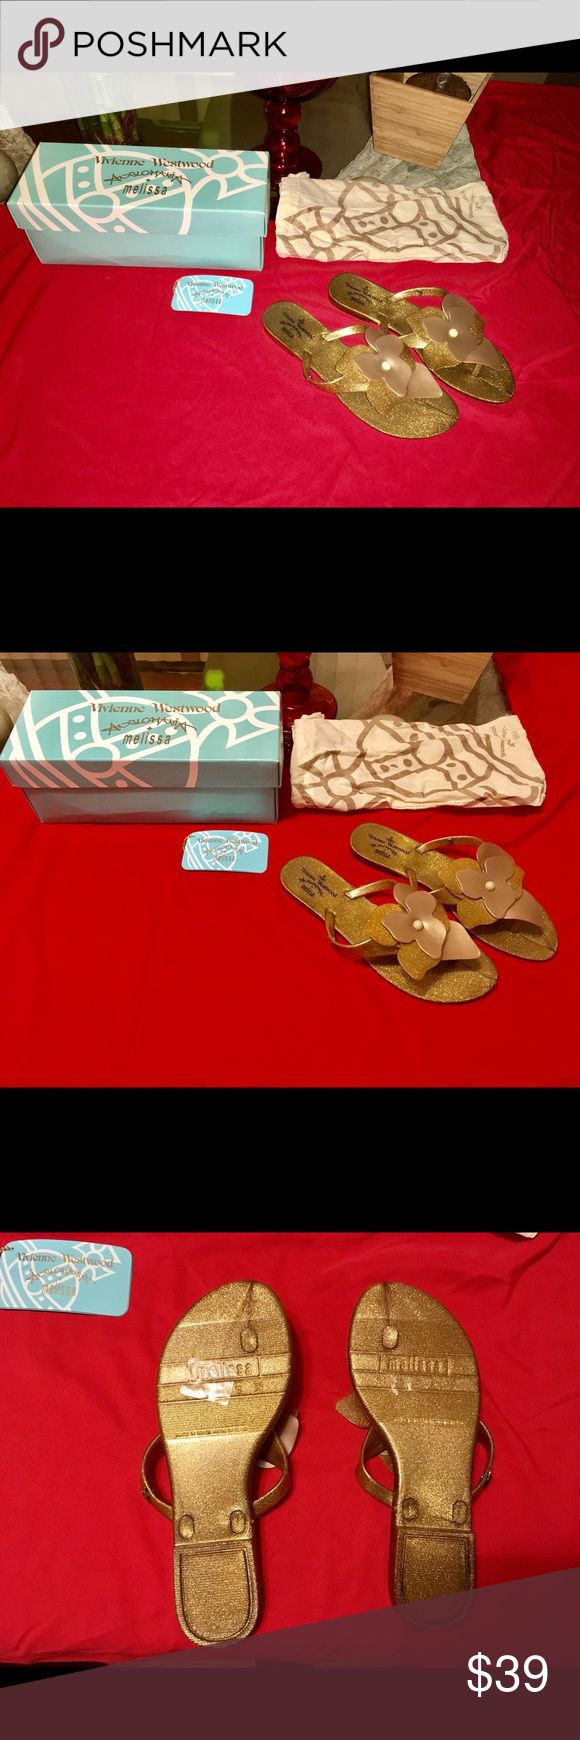 Vivienne Westwood Melissa Sandals Gold Flip Flop Comes Brand New w Box, Tag, and Dustbag. 100% Genuine Vivienne Westwood Melissa Sandals. Super comfy and super cute gold glitter flip flops with a gorgeous handmade flower. Melissa Shoes Sandals